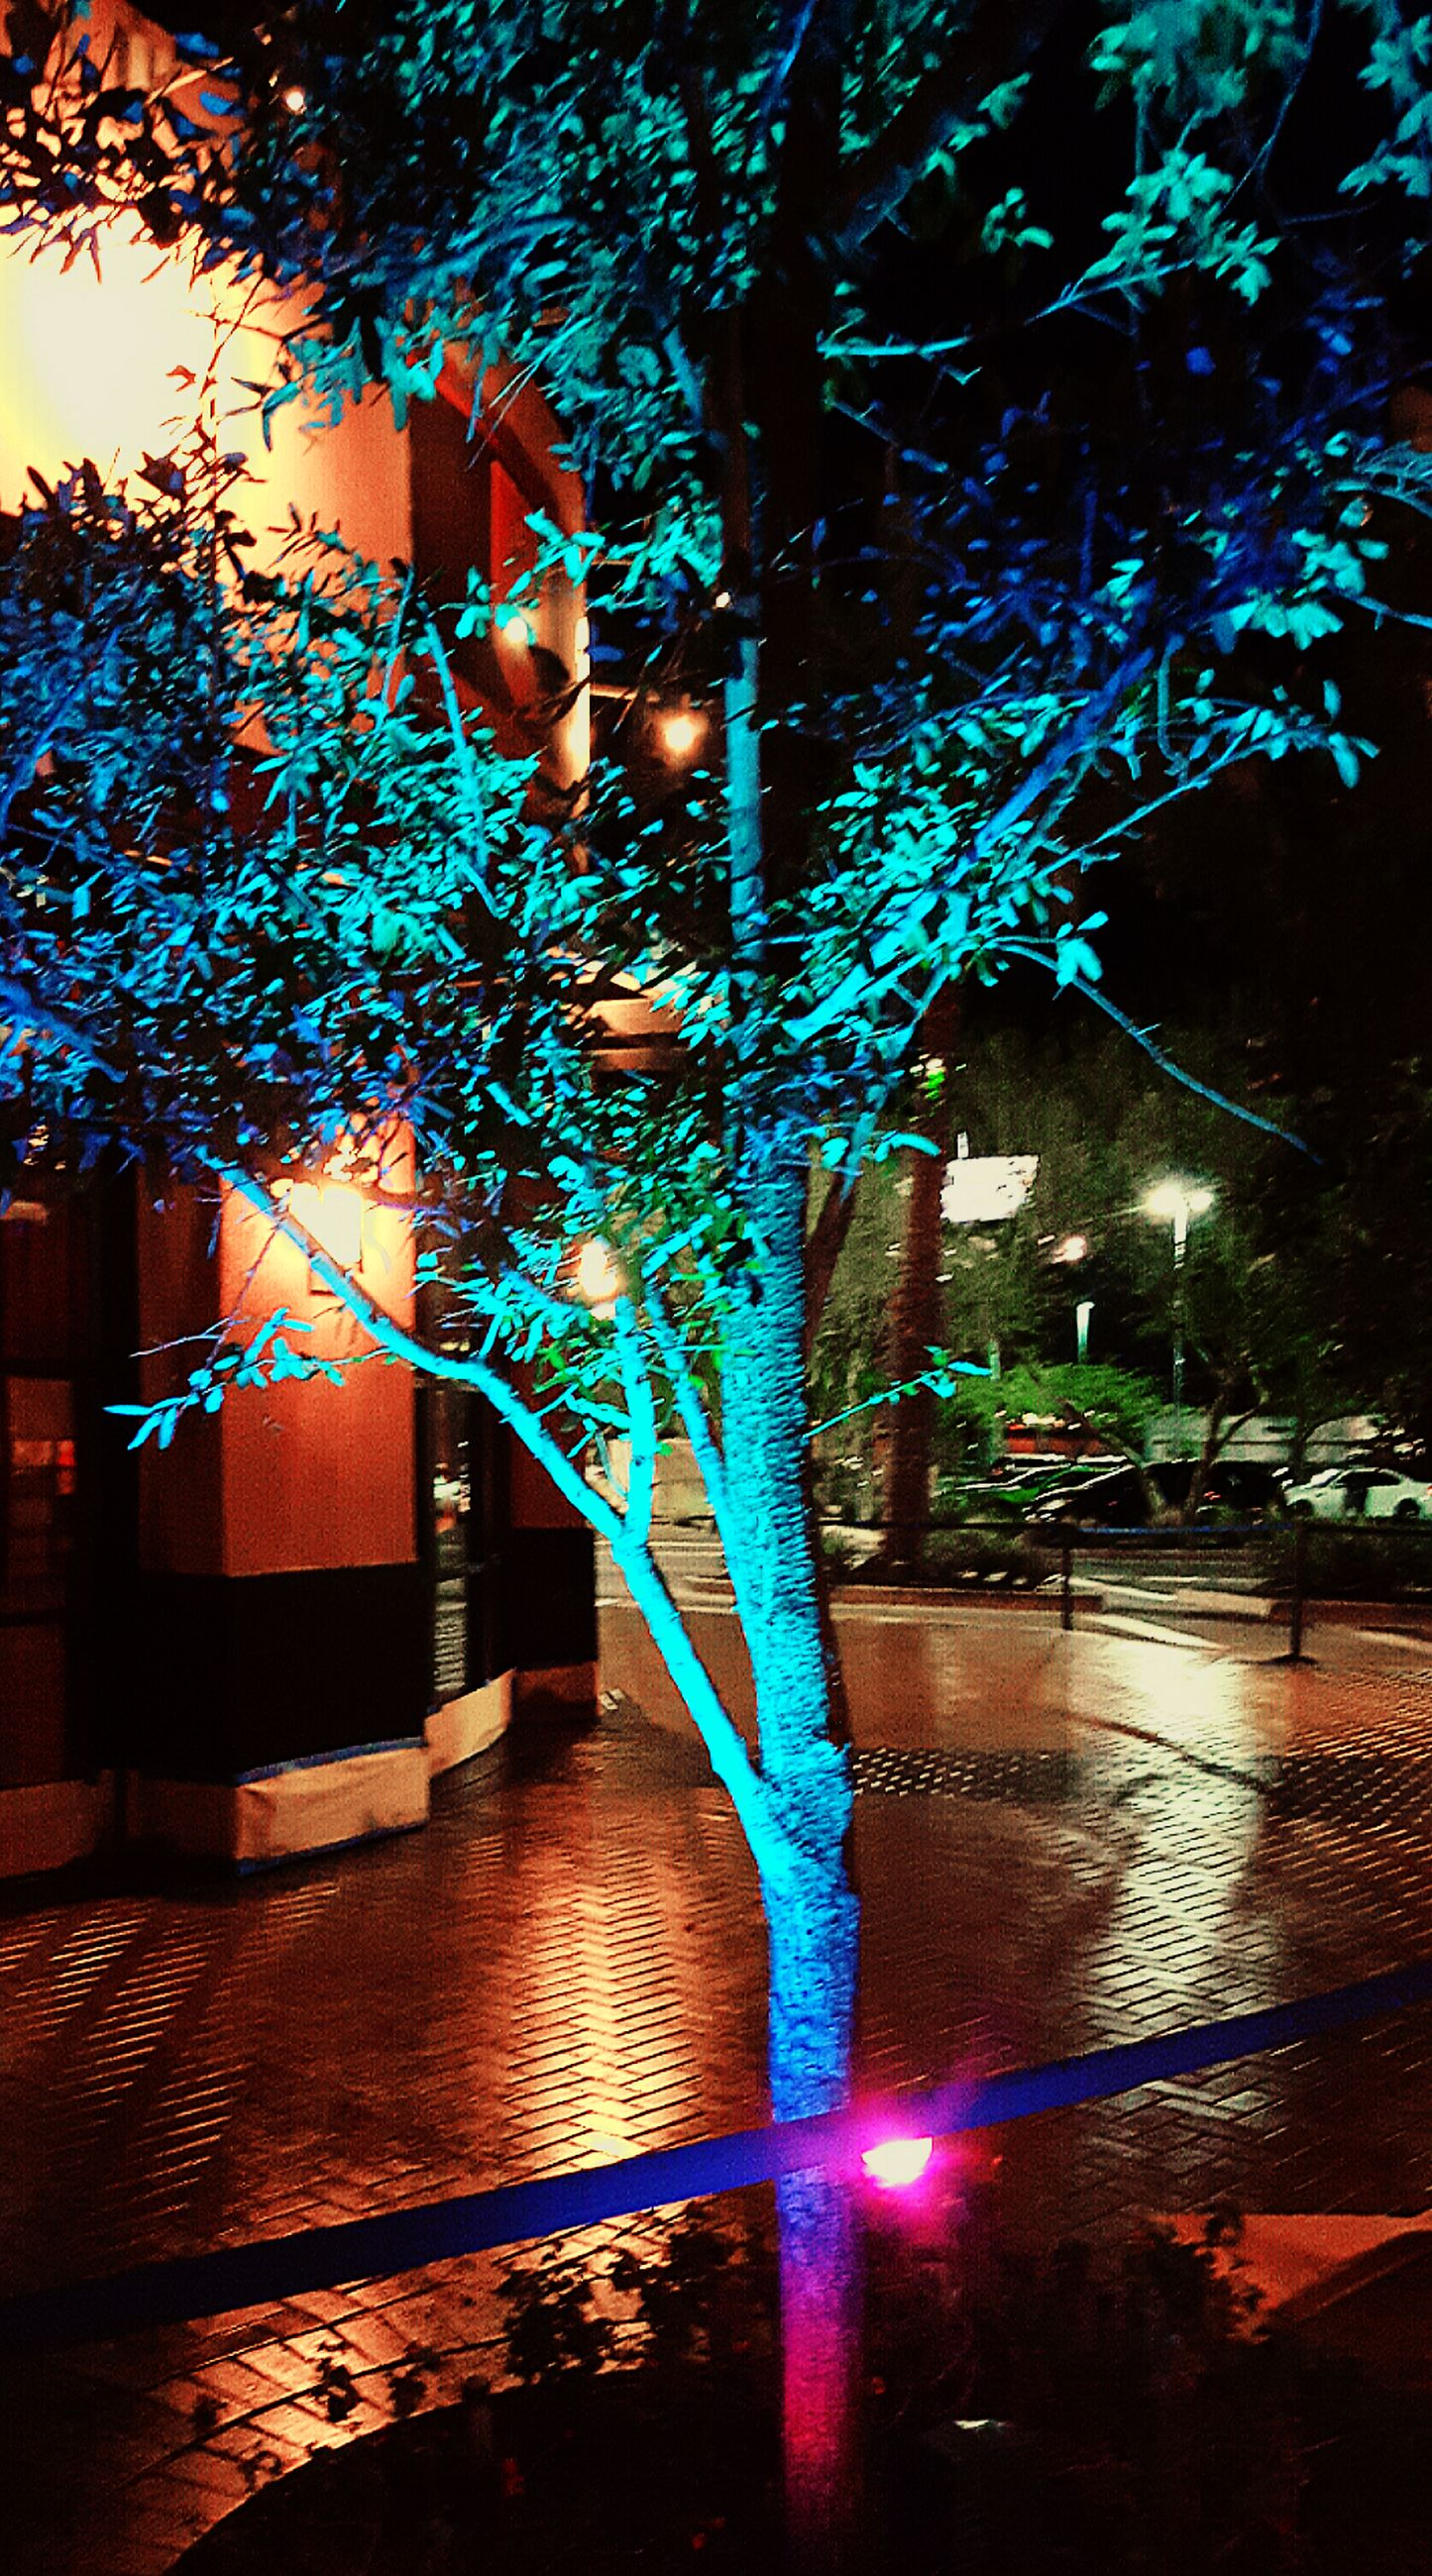 illuminated, tree, water, night, reflection, street light, branch, built structure, lighting equipment, architecture, building exterior, street, outdoors, no people, city, sunlight, light - natural phenomenon, nature, multi colored, motion